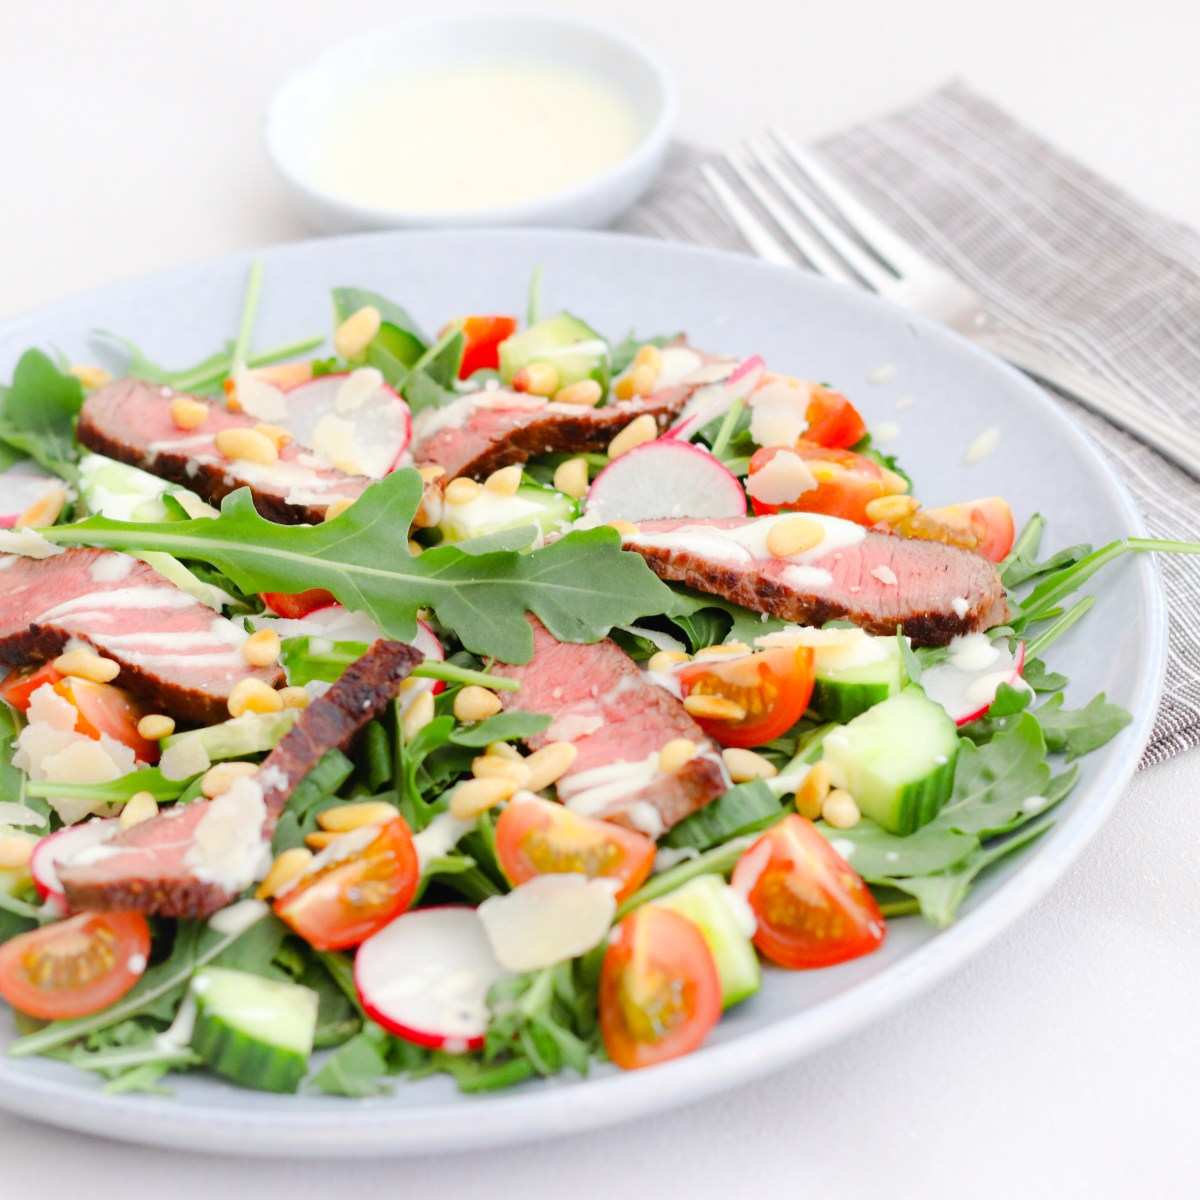 Rumpsteak salade